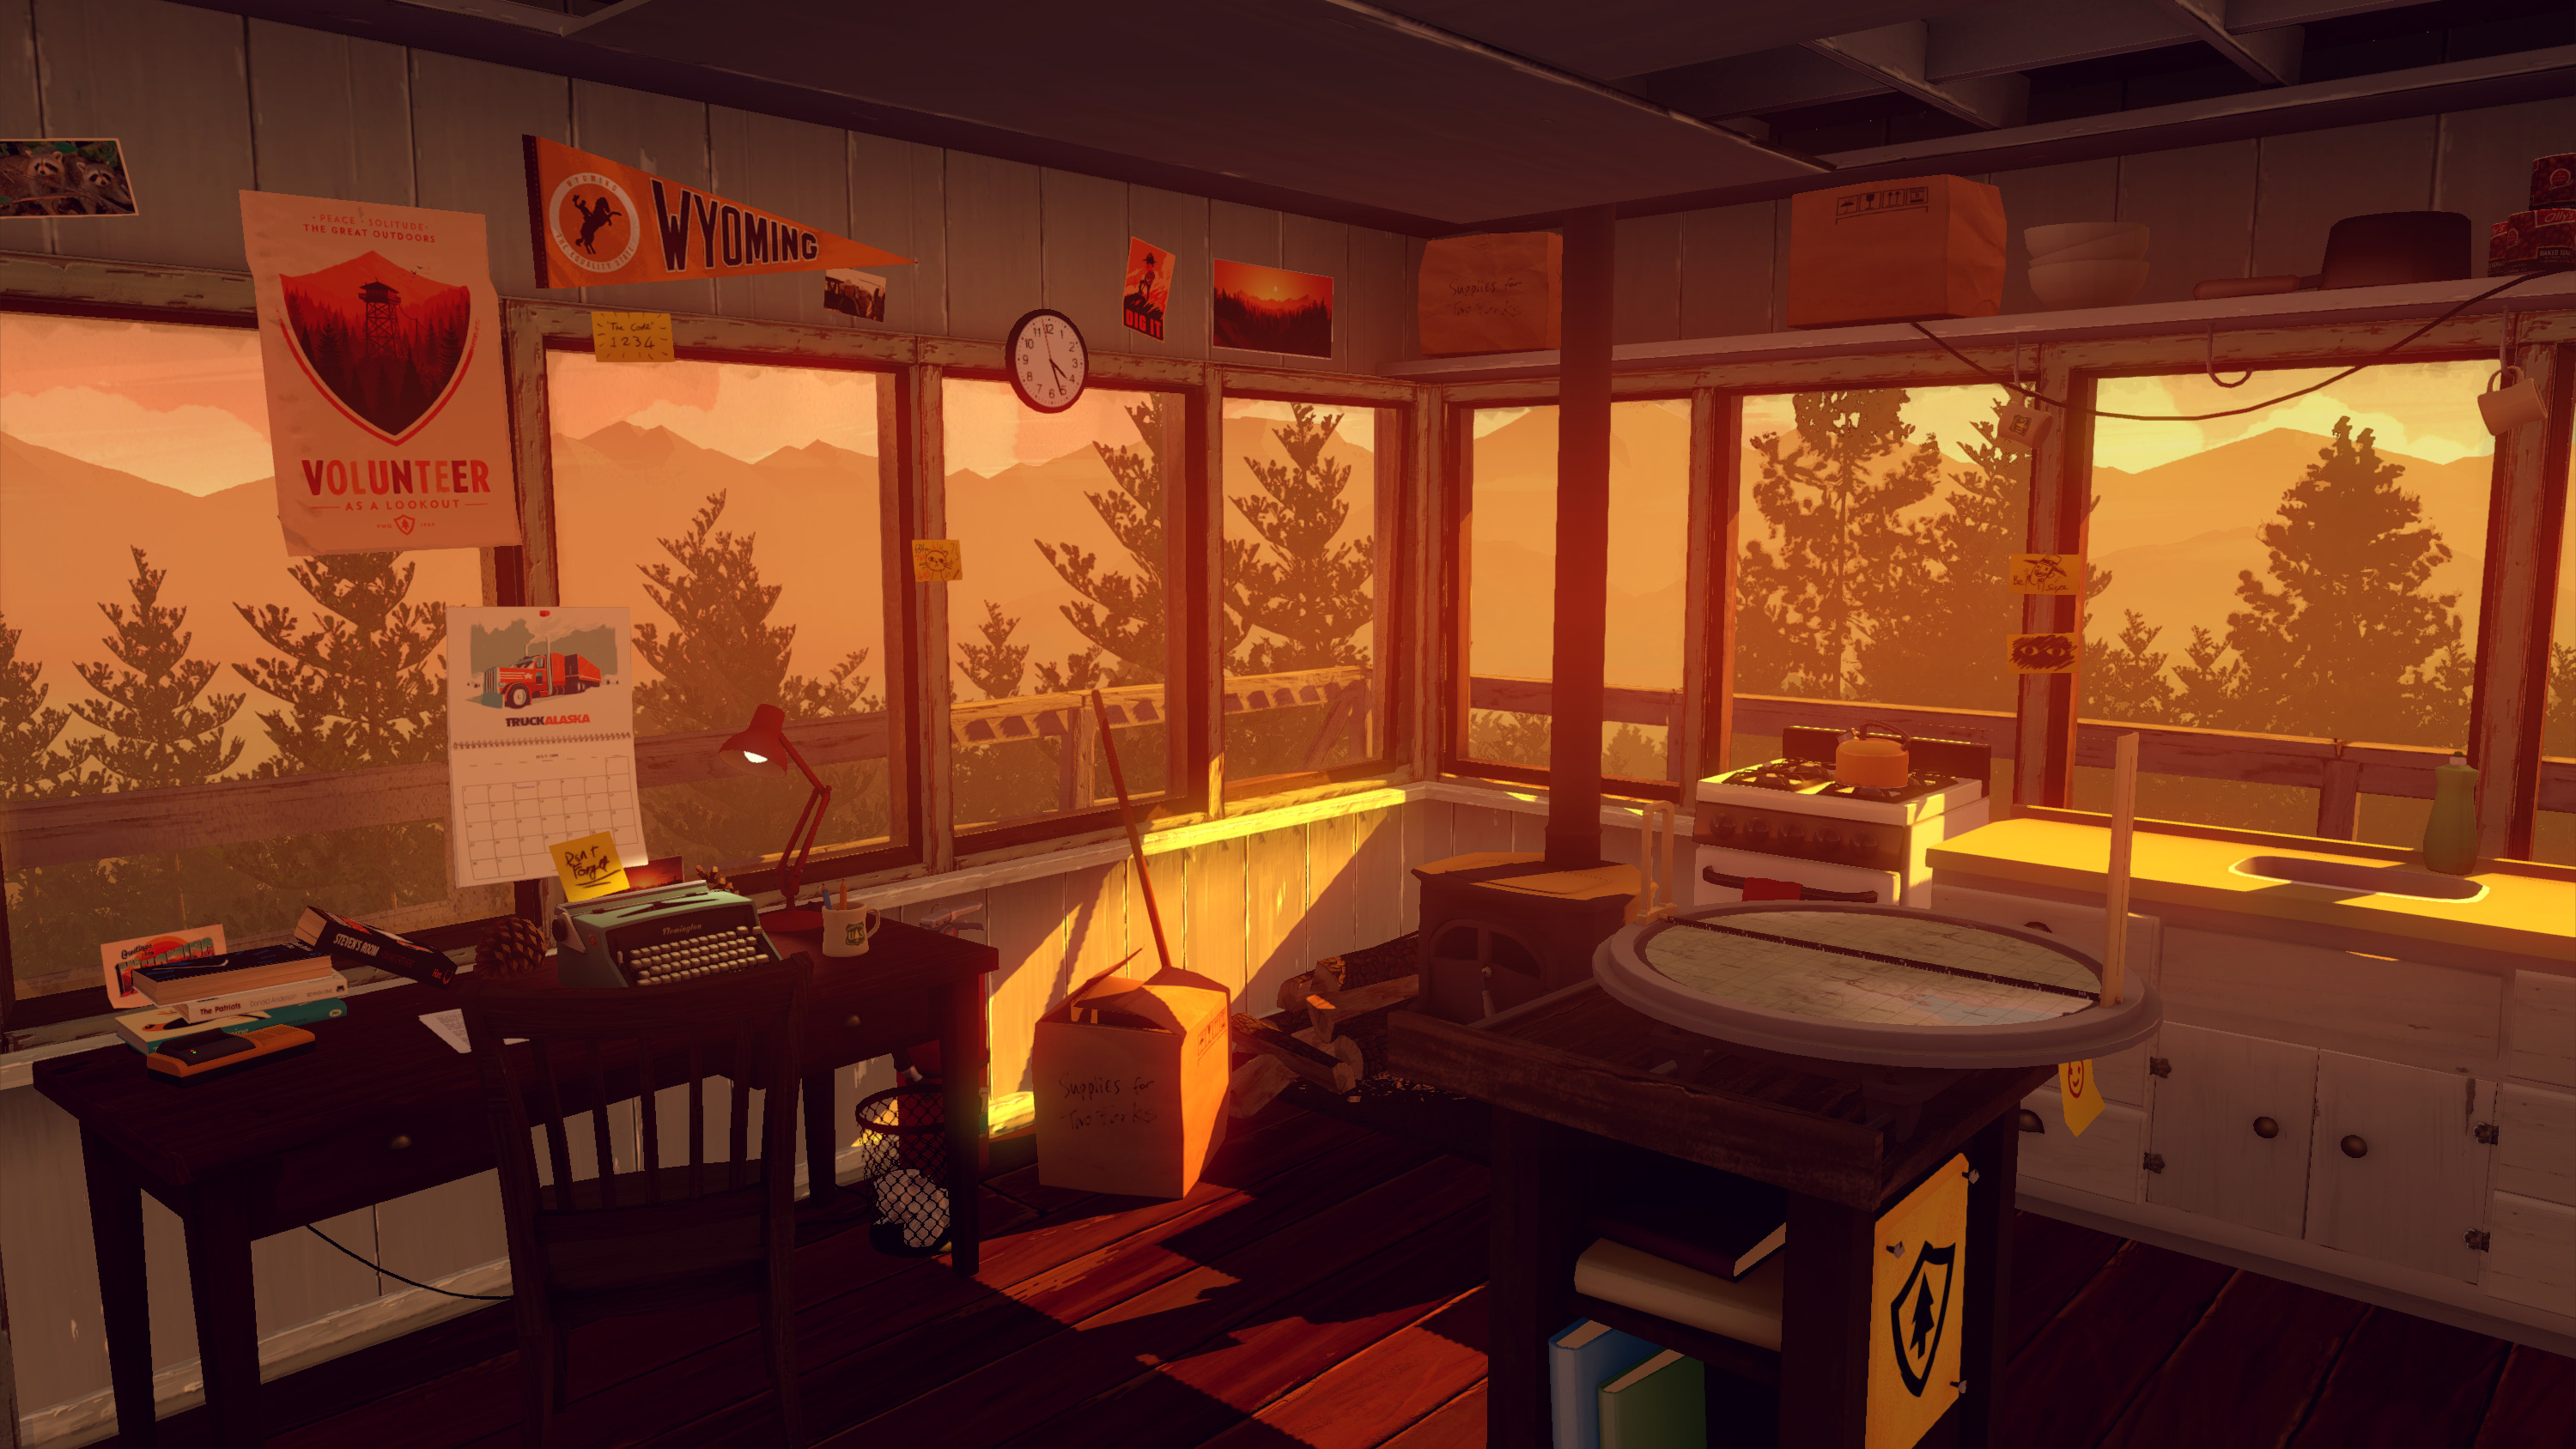 Firewatch: Out now for Windows, Nintendo Switch, PlayStation 4, Mac, and Linux